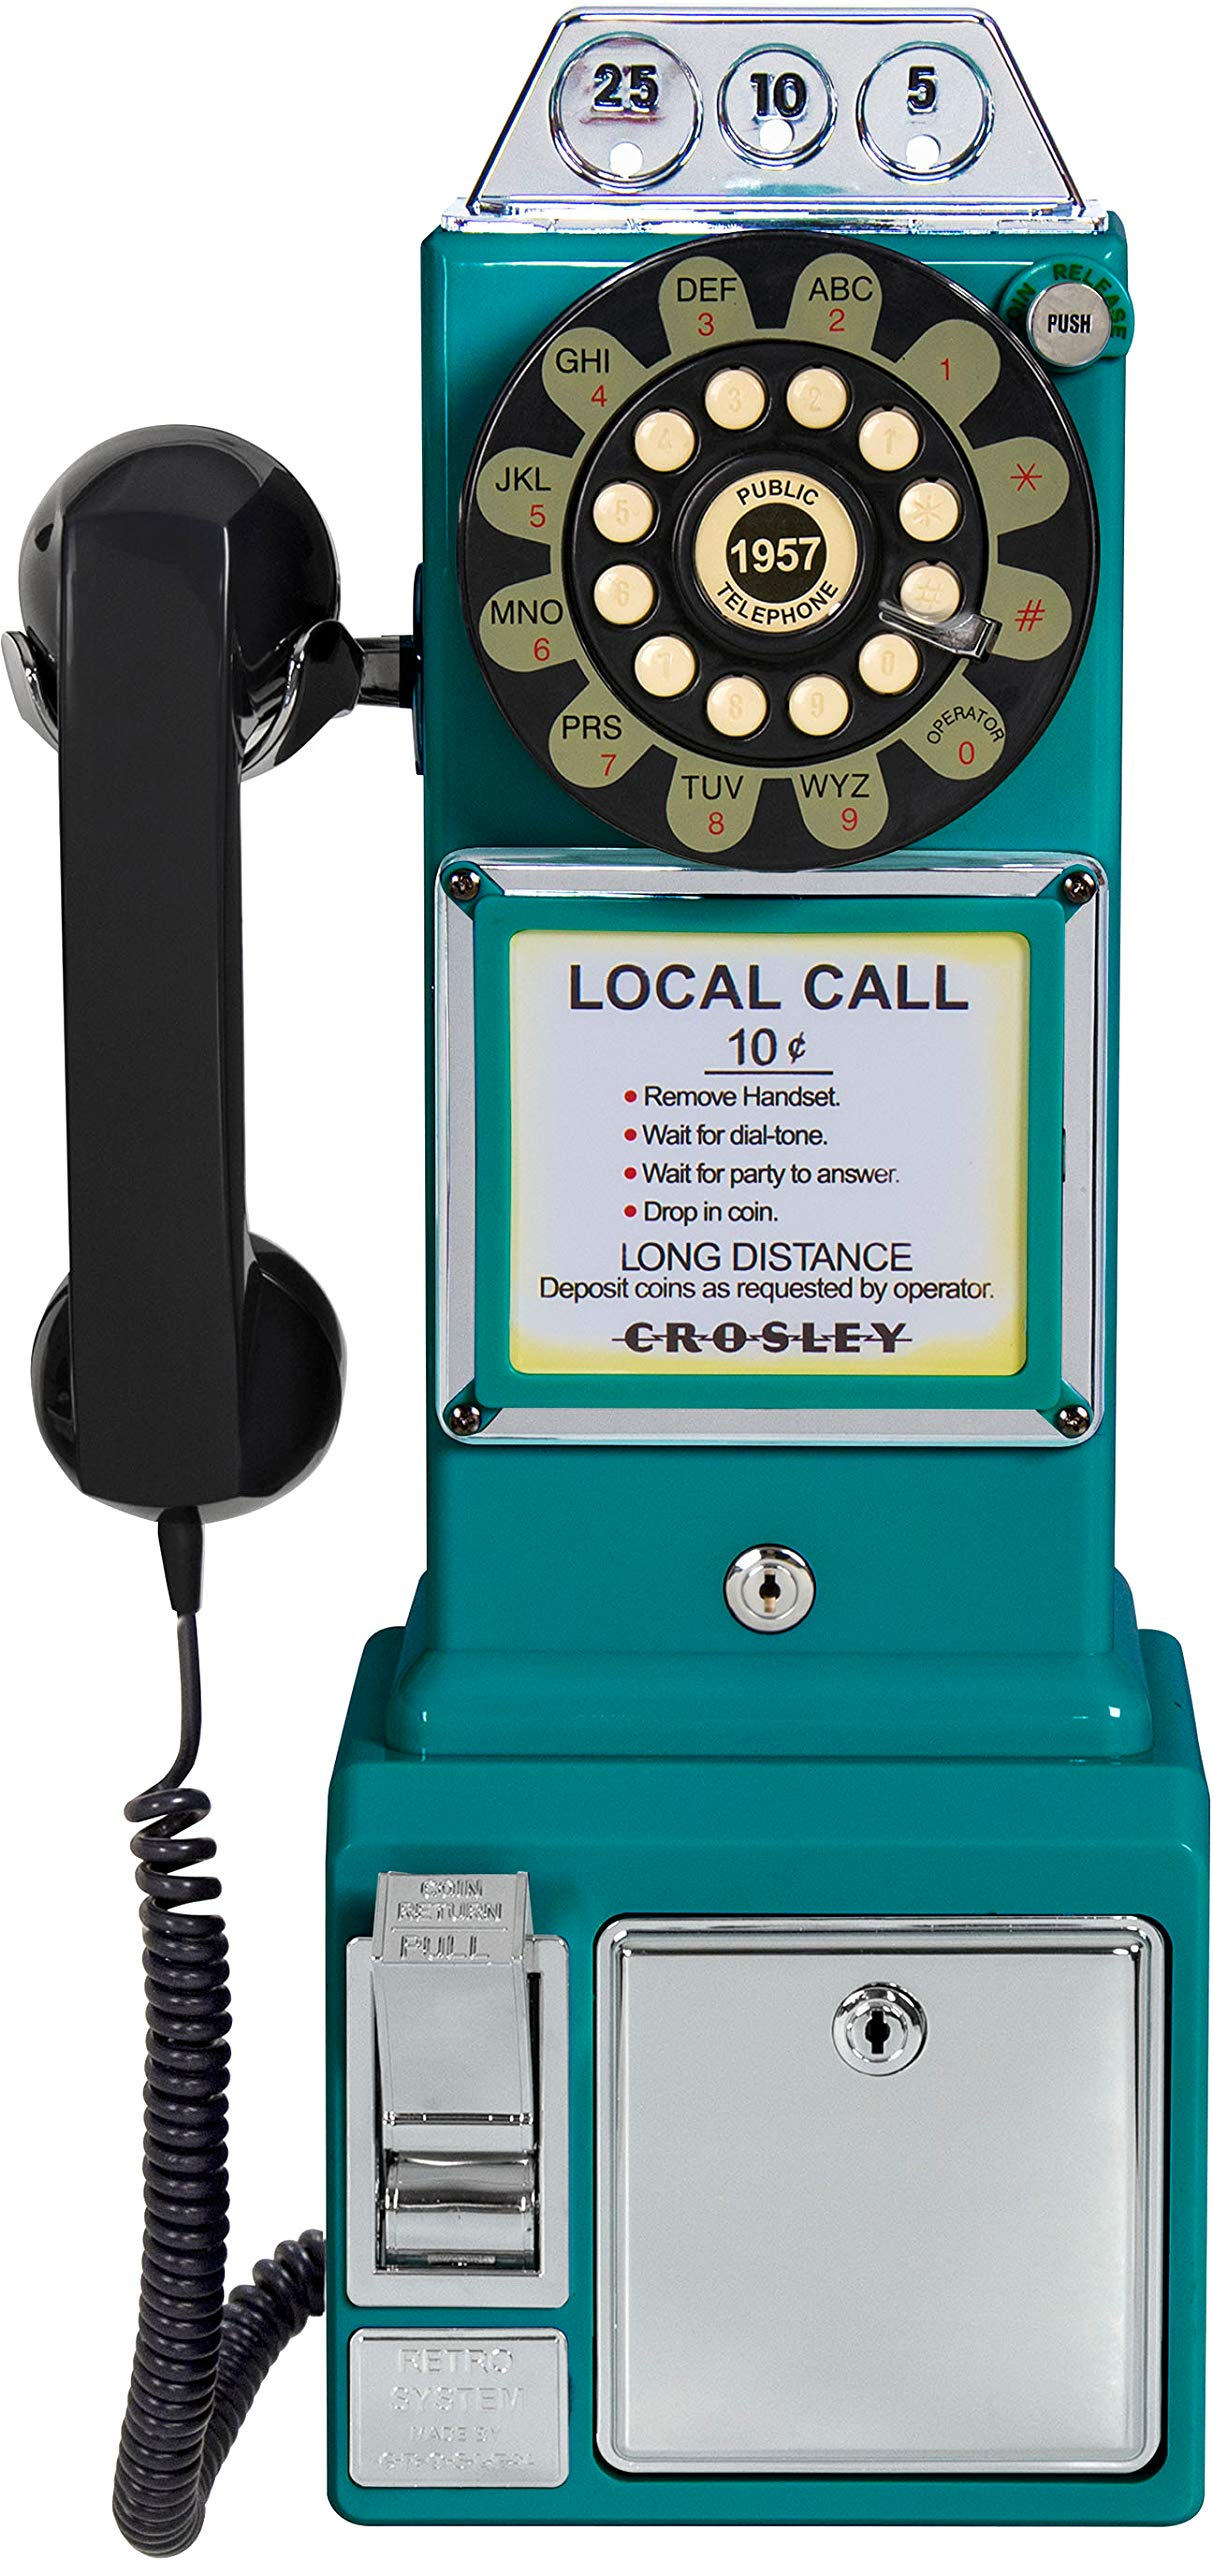 Crosley CR56-TL 1950's Payphone with Push Button Technology, Teal by Crosley (Image #2)